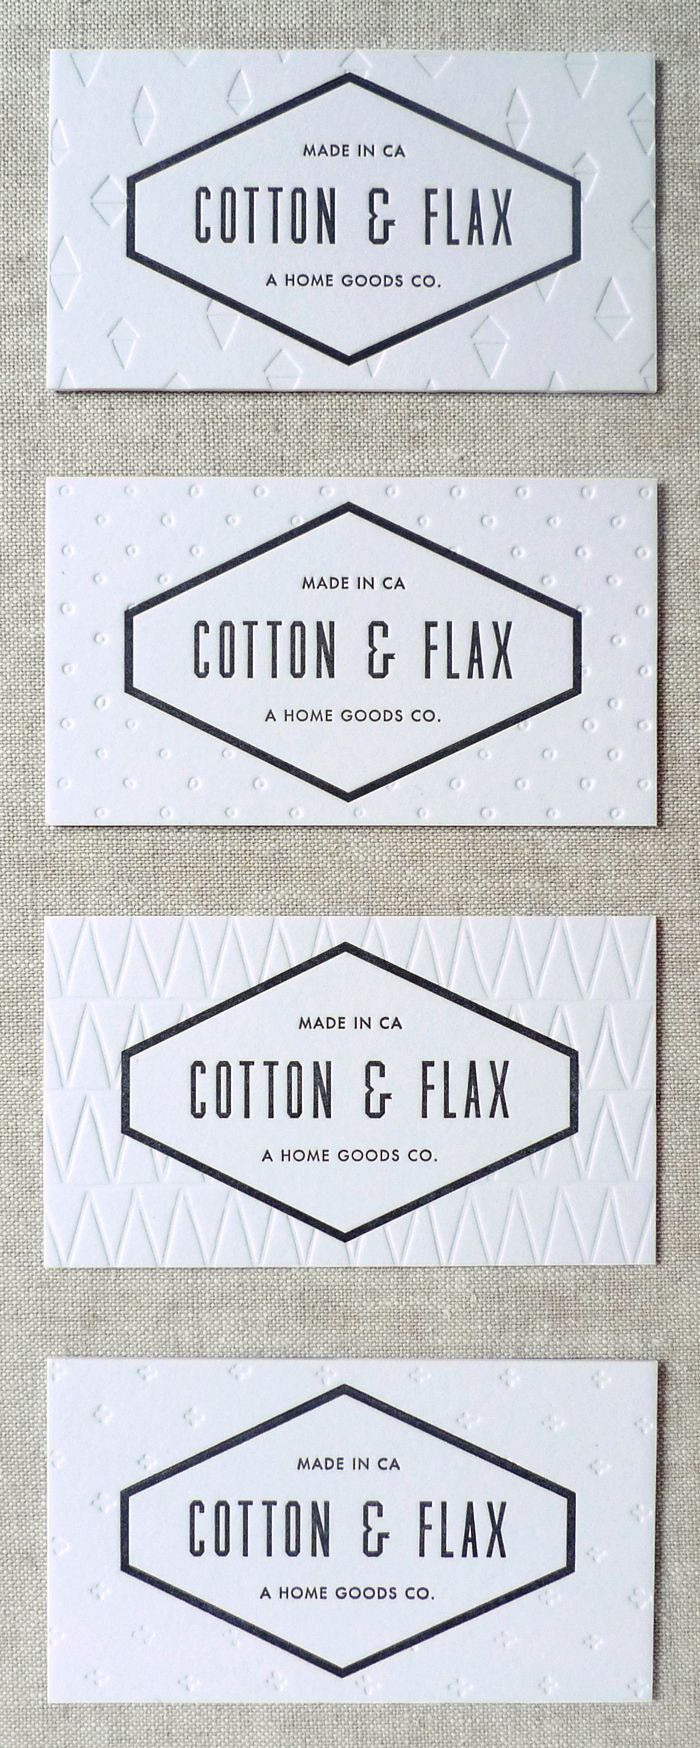 Cotton & Flax business cards (letterpress printed by Luludee)